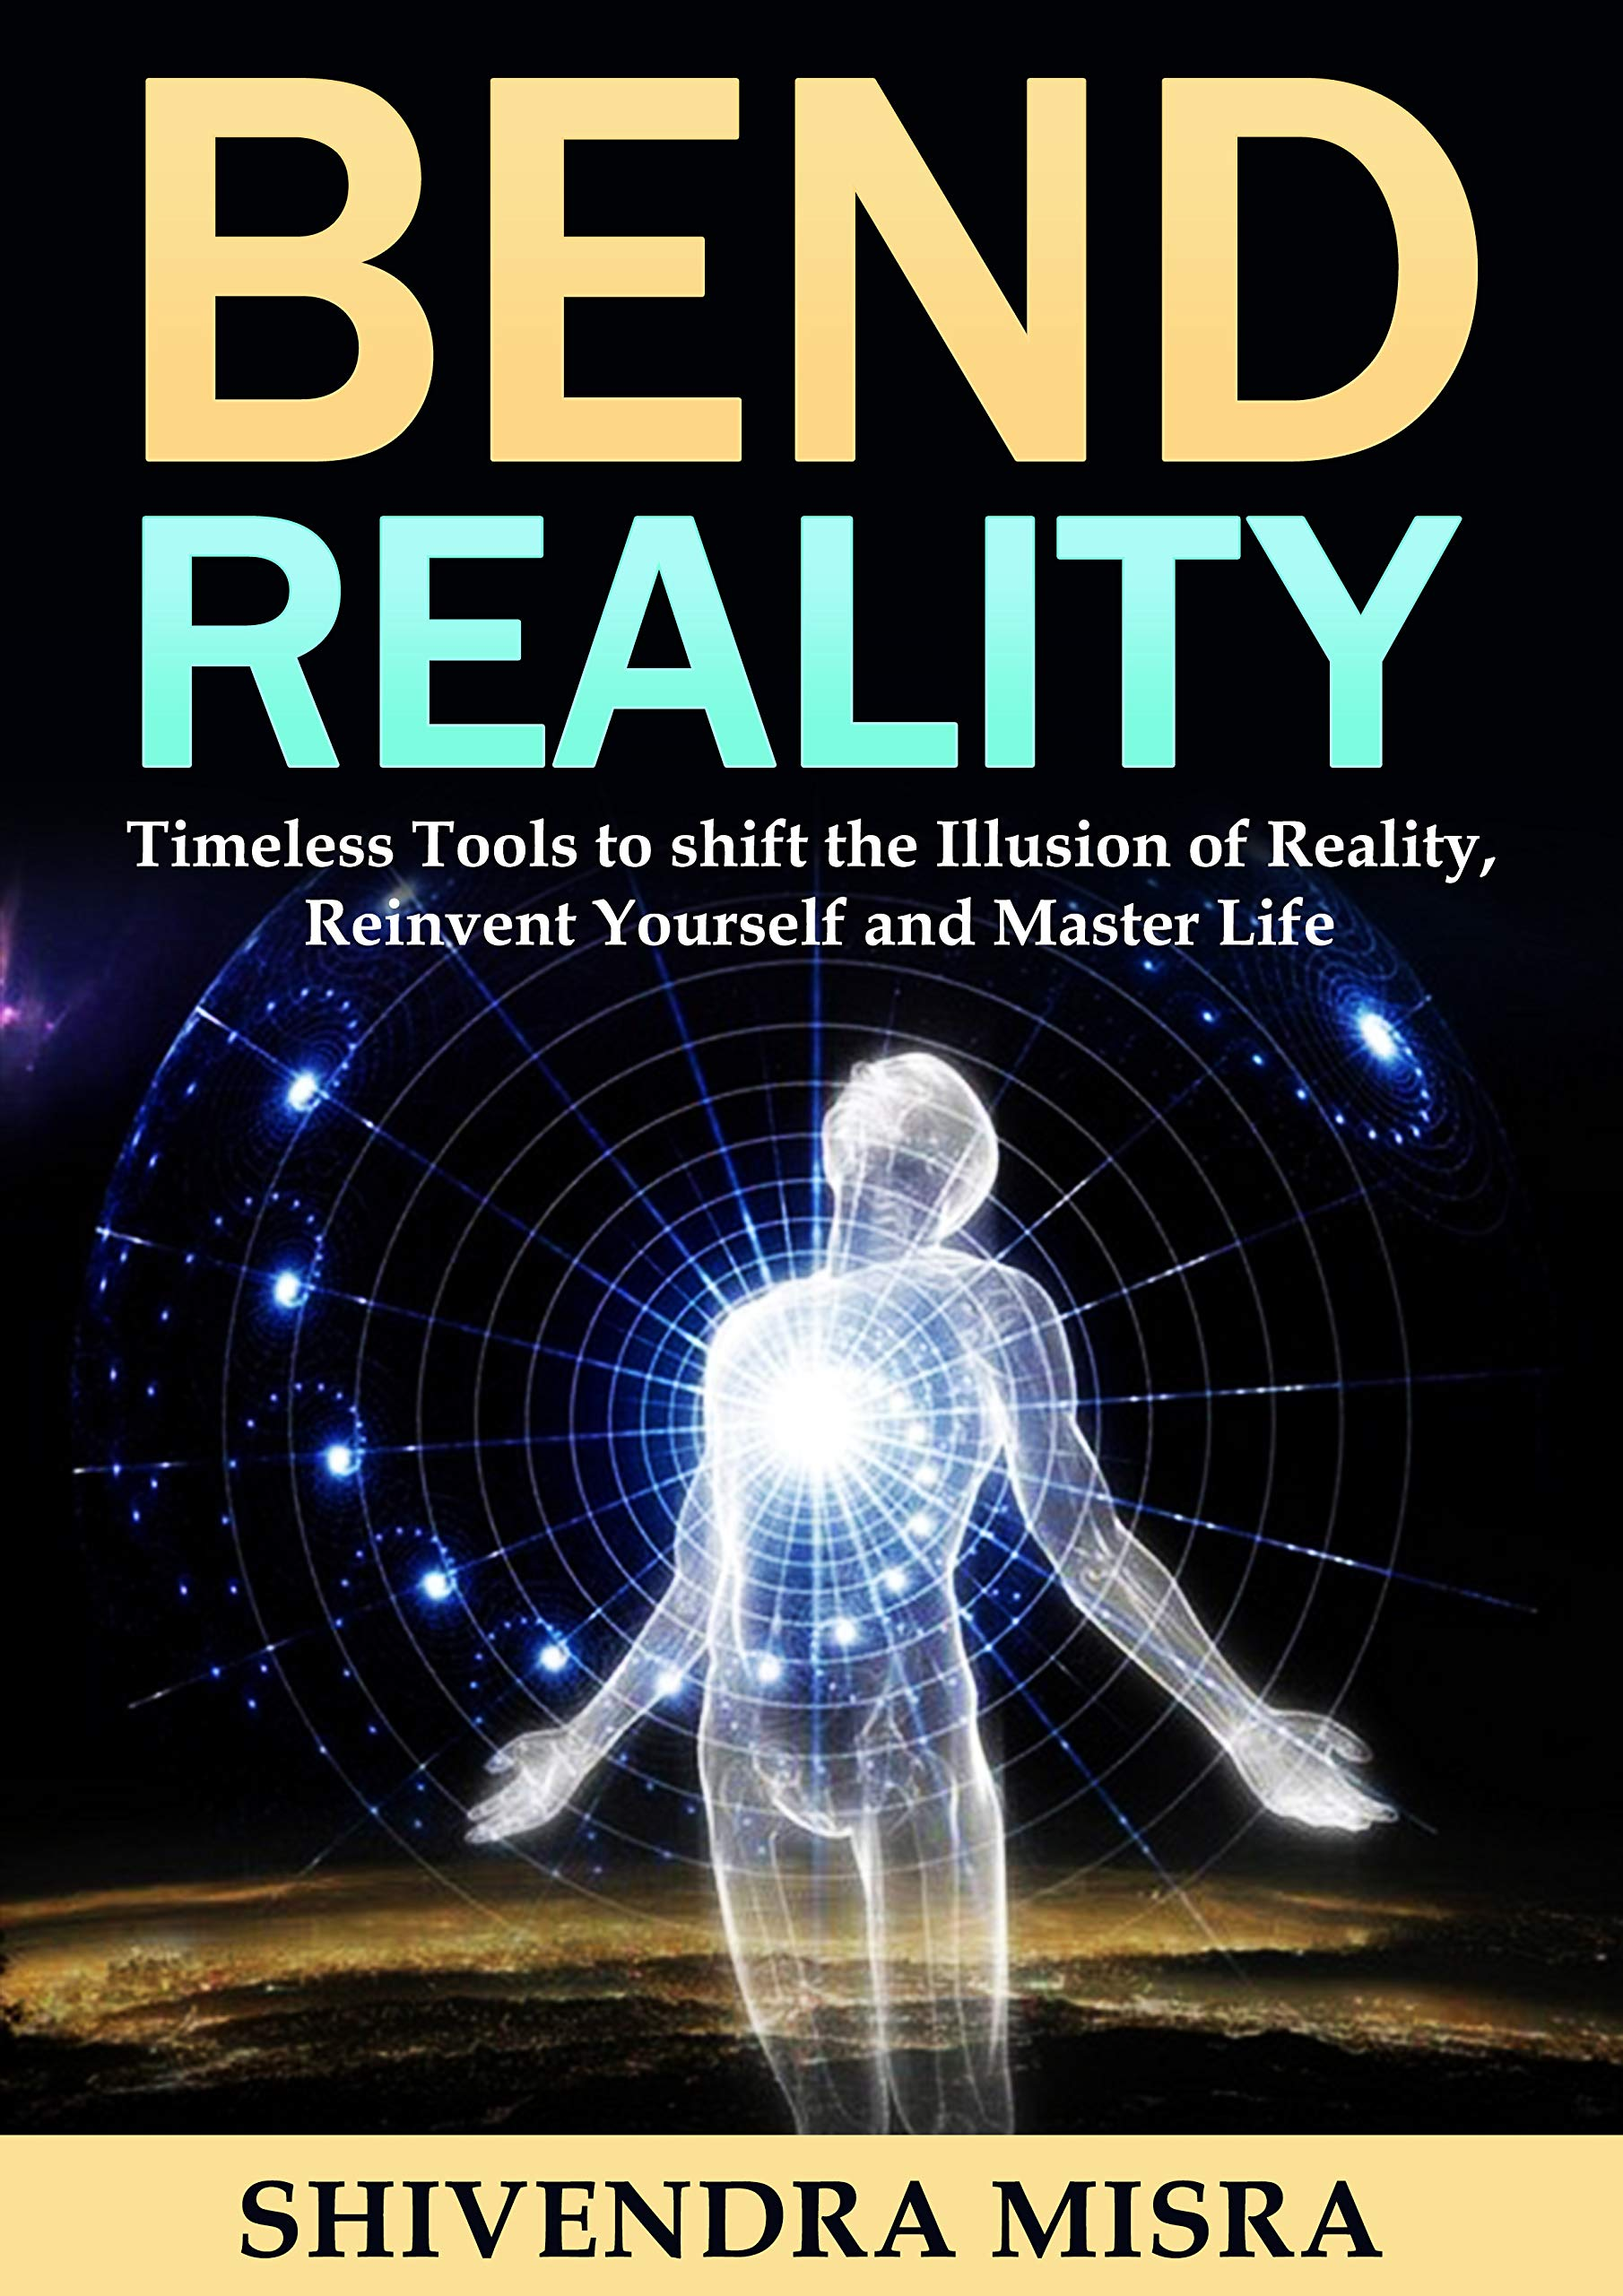 Bend Reality: Timeless Tools to shift the Illusion of Reality, Reinvent Yourself and Master Life